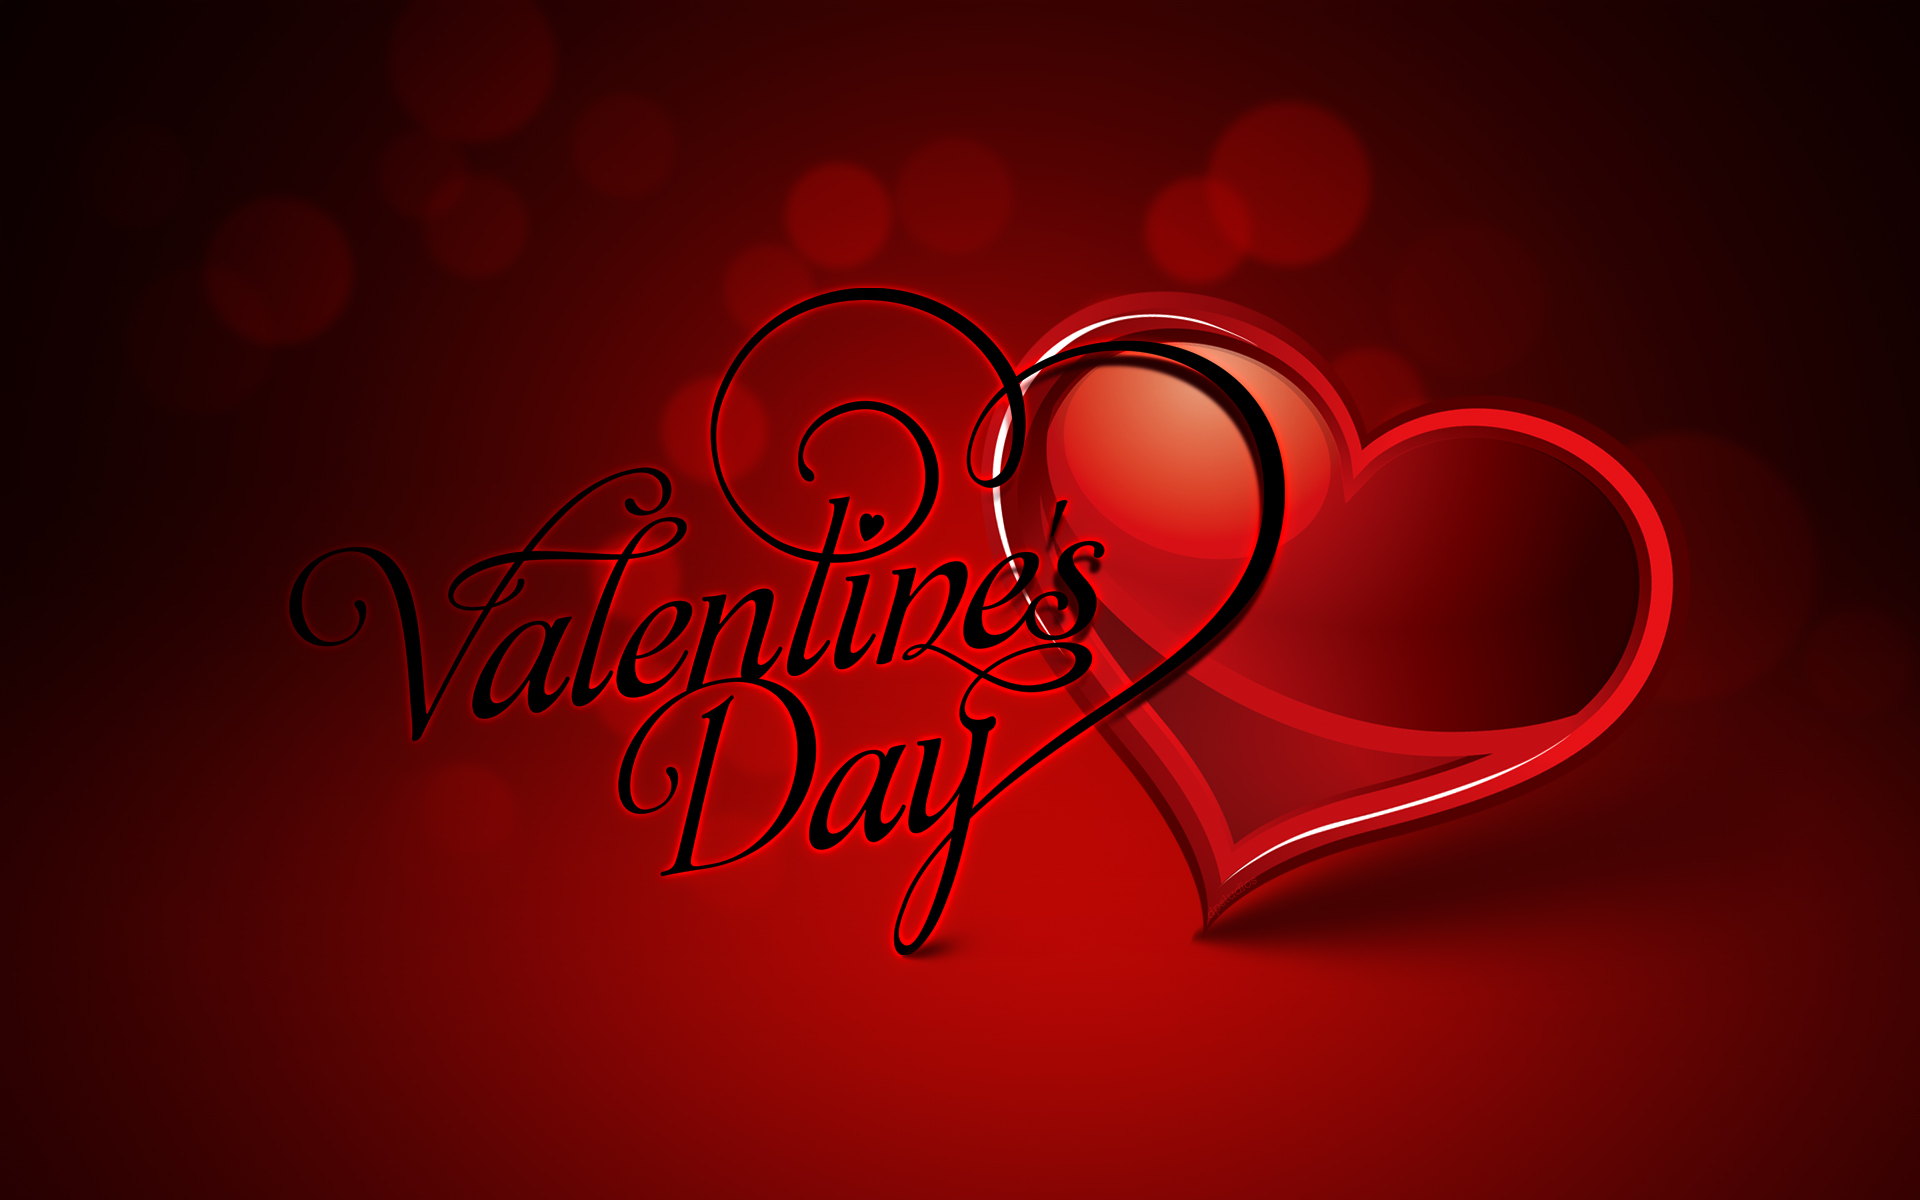 Valentine's-Day-Wishes-HD-Wallpaper